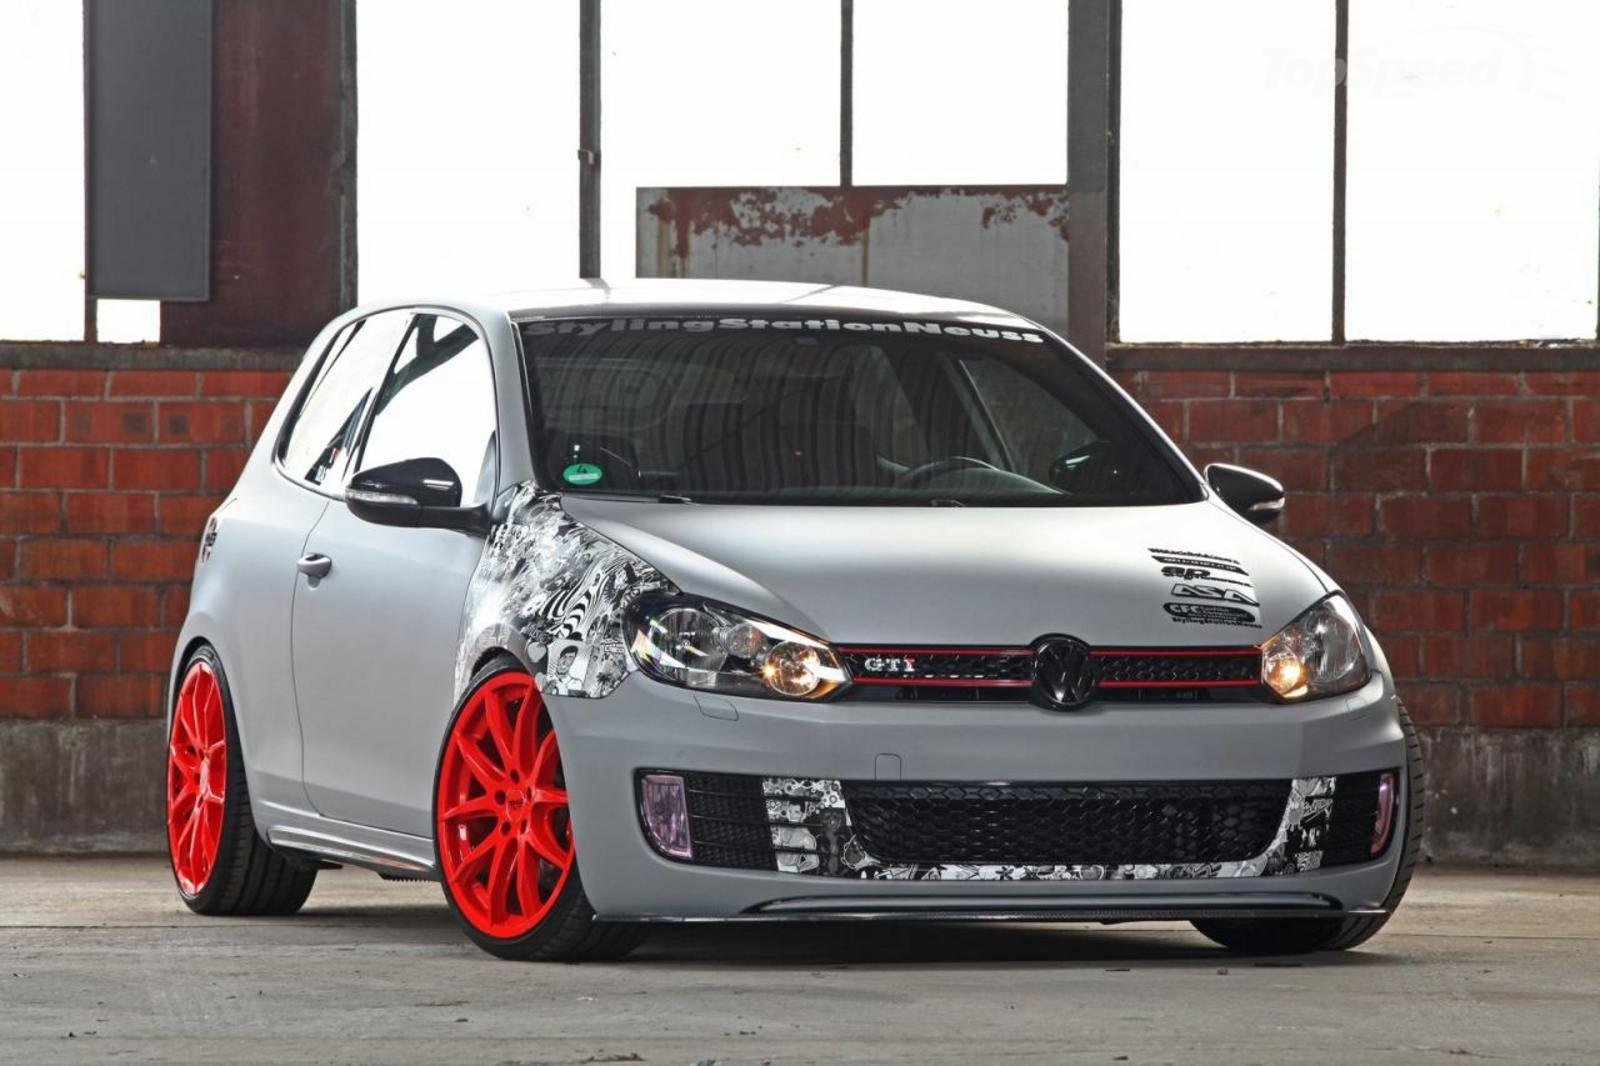 2012 volkswagen golf vi gti leitgolf by cfc stylingstation review top speed. Black Bedroom Furniture Sets. Home Design Ideas